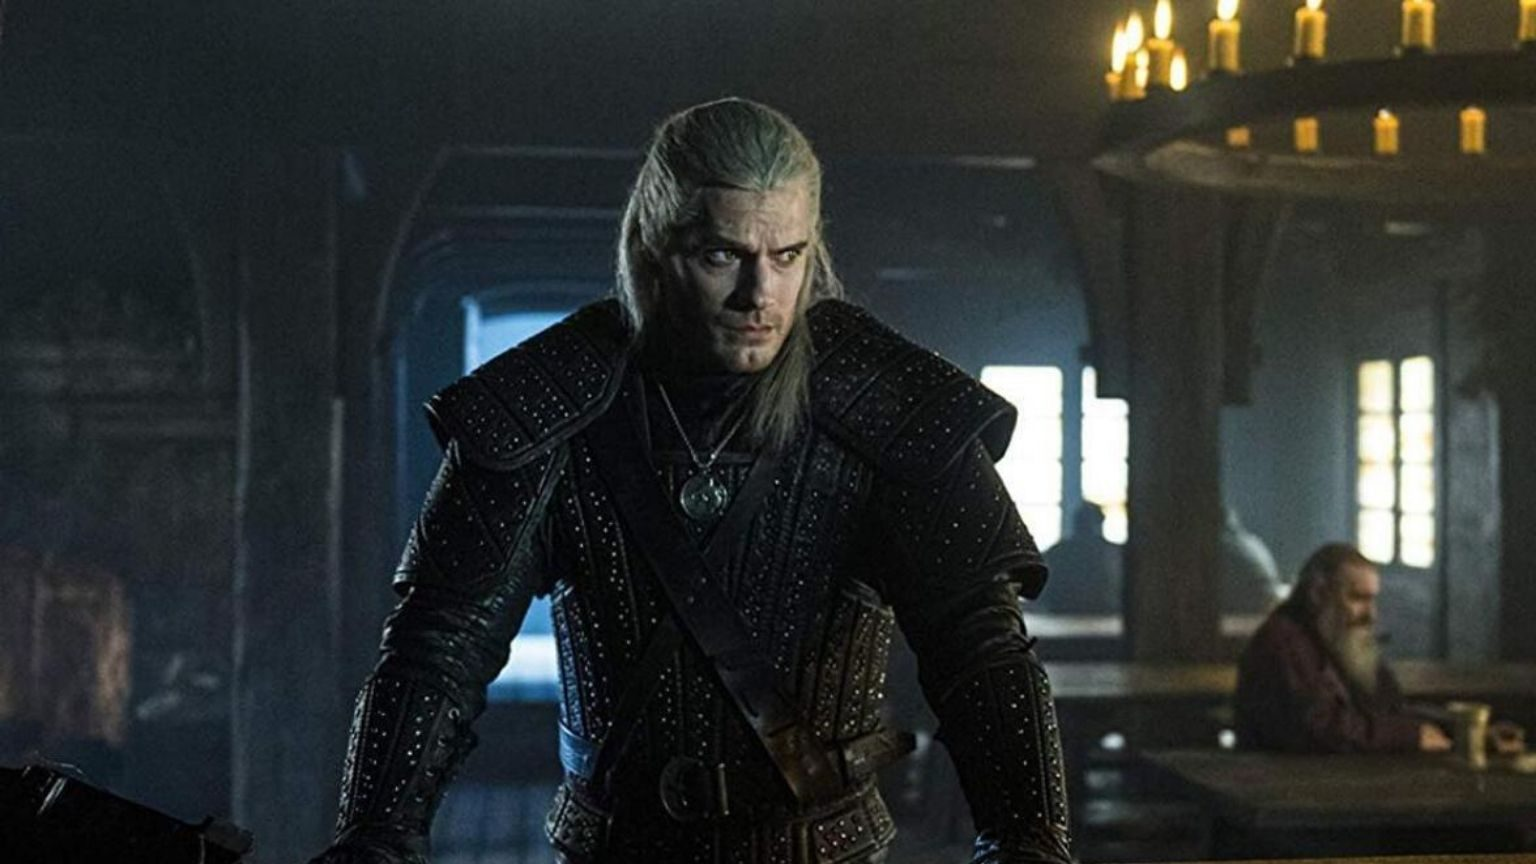 Henry Cavill as Geralt of Rivia in The Witcher series